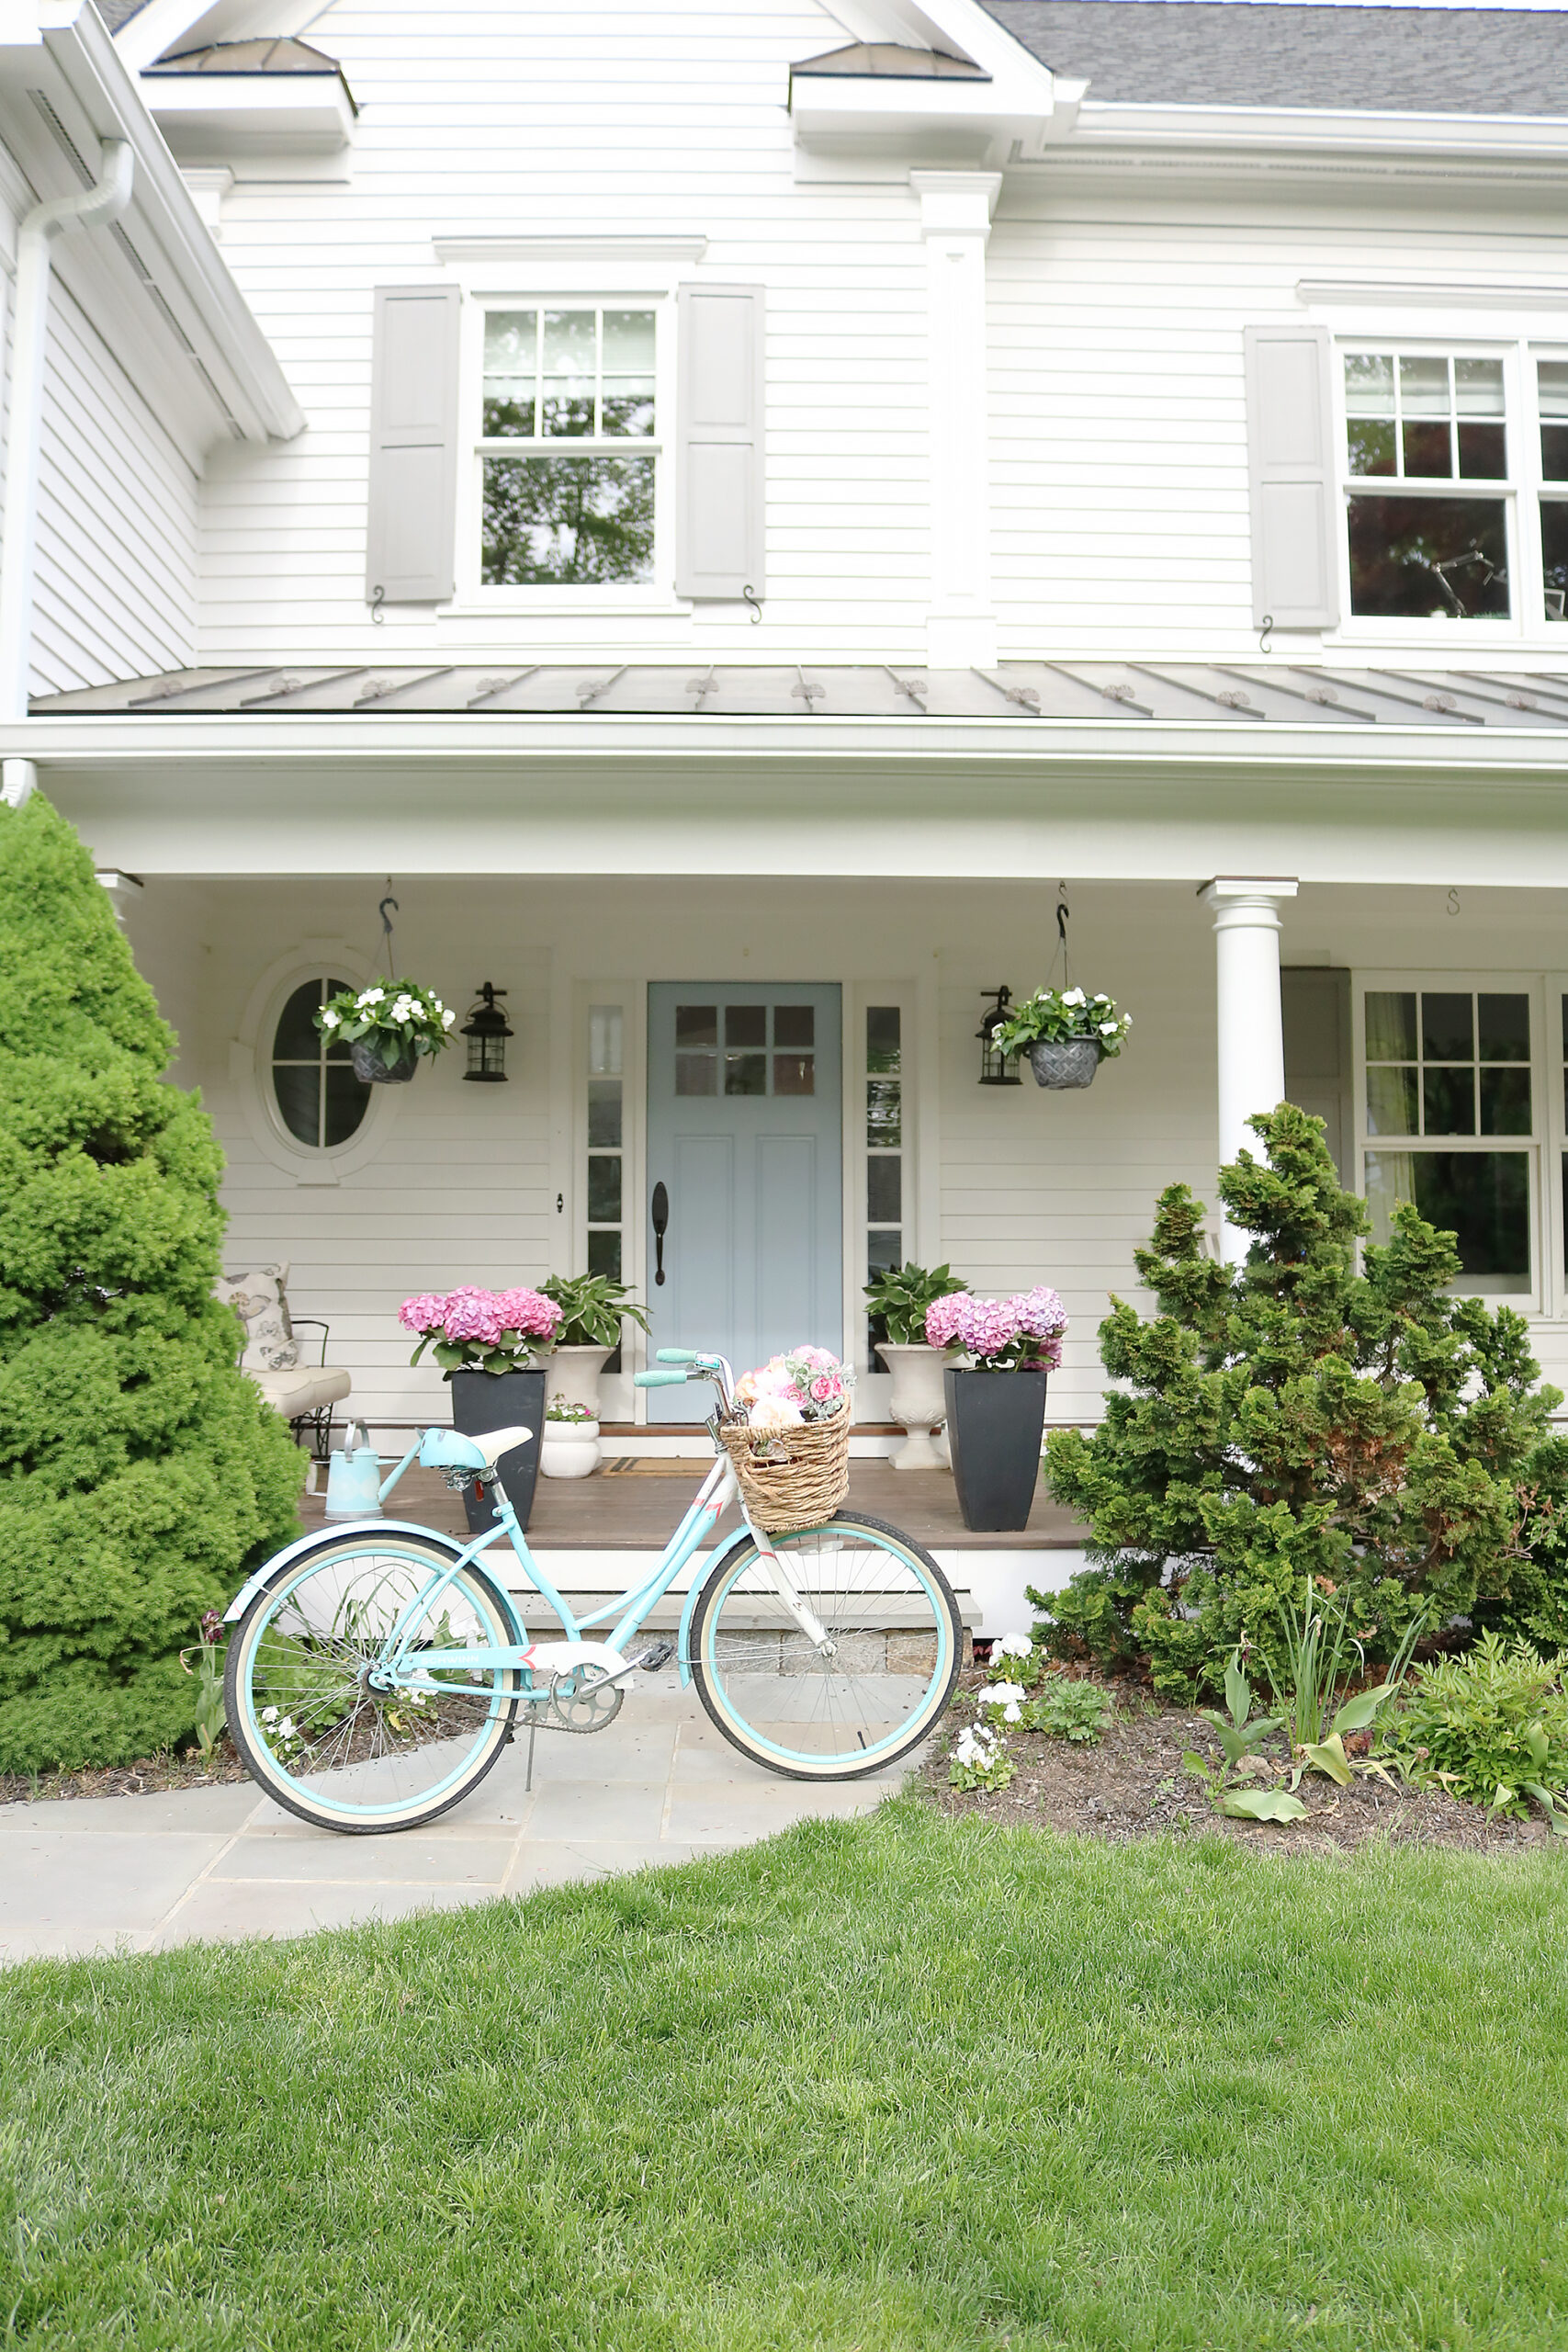 A beautiful home exterior can make or break curb appeal! Sharing 7 easy and simple curb appeal ideas || Darling Darleen Top CT Lifestyle Blogger home exterior | outdoor charm | curb appeal ideas | home exterior ideas | white house with gray shutters | porch swing | shutter | new england charm | blue front door | beach bike | flowering pots front door #darlingdarleen